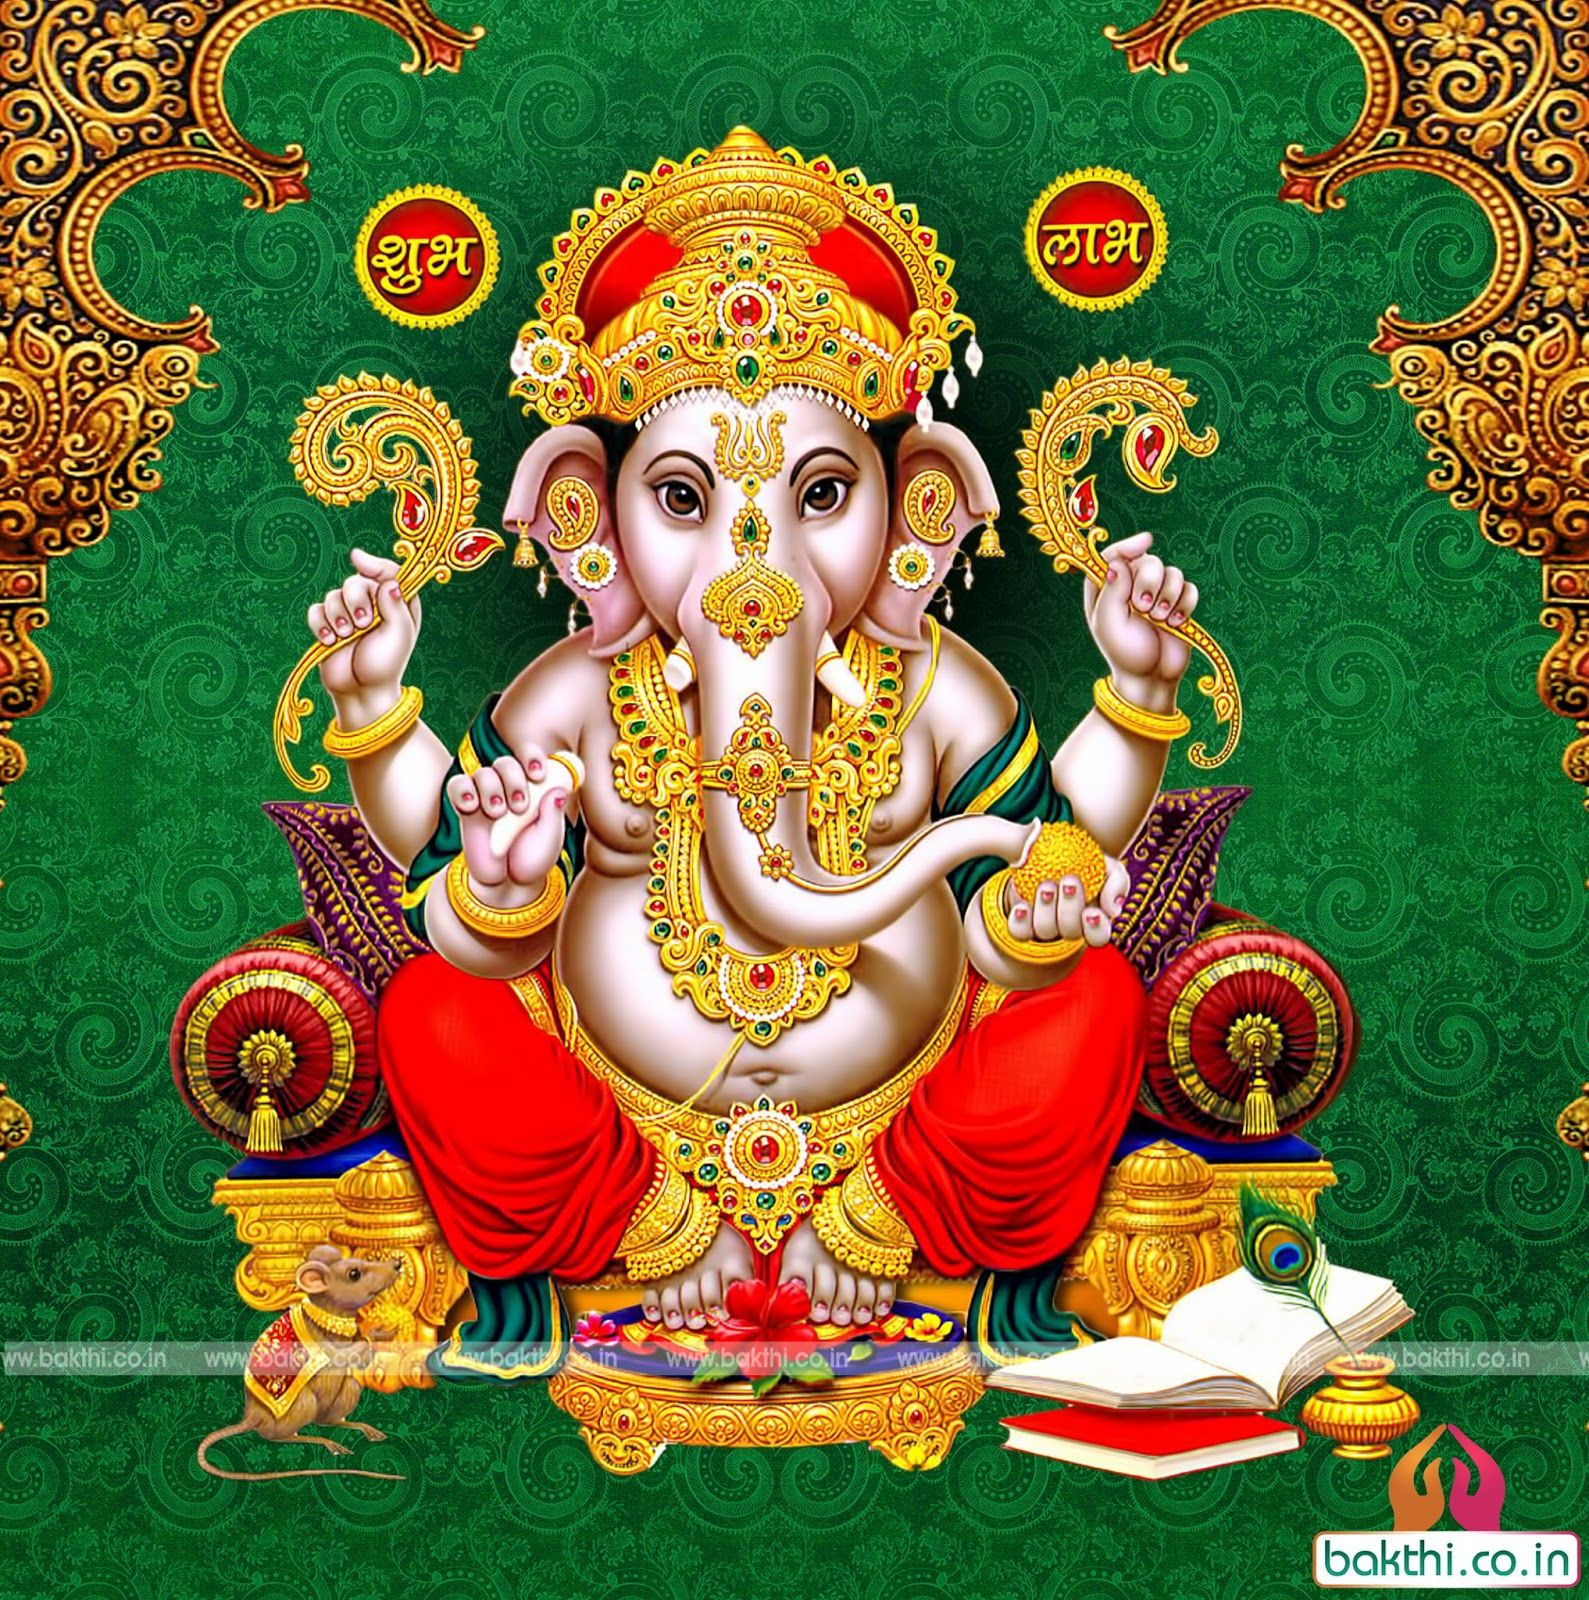 lord ganesha hd images free downloads for wedding cards bakthi co